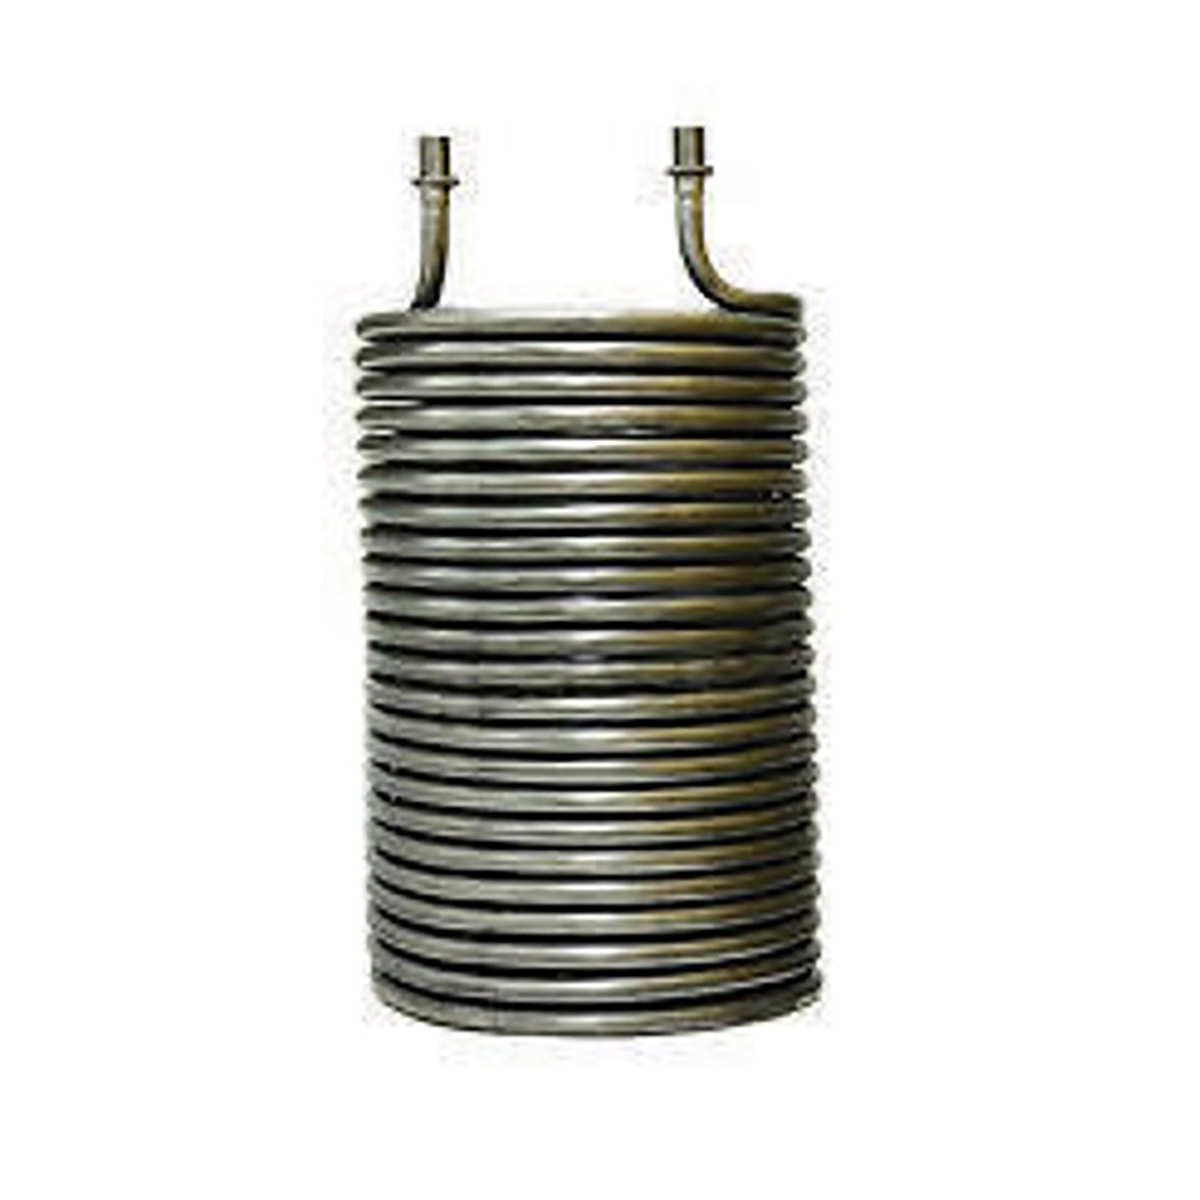 LAFN40891  HotWash Heating Coil Stainless Steel